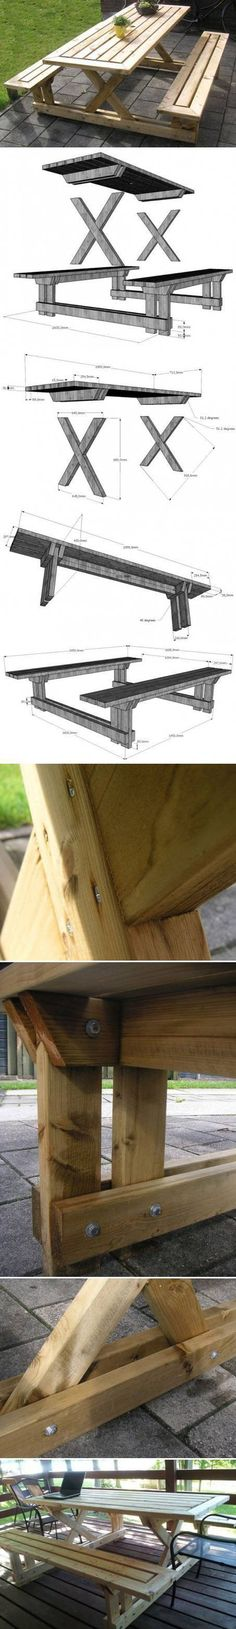 stylowi_pl_diy-zrob-to-sam_diy-garden-bench-and-table-diy-projects--usefuldiy_11596556